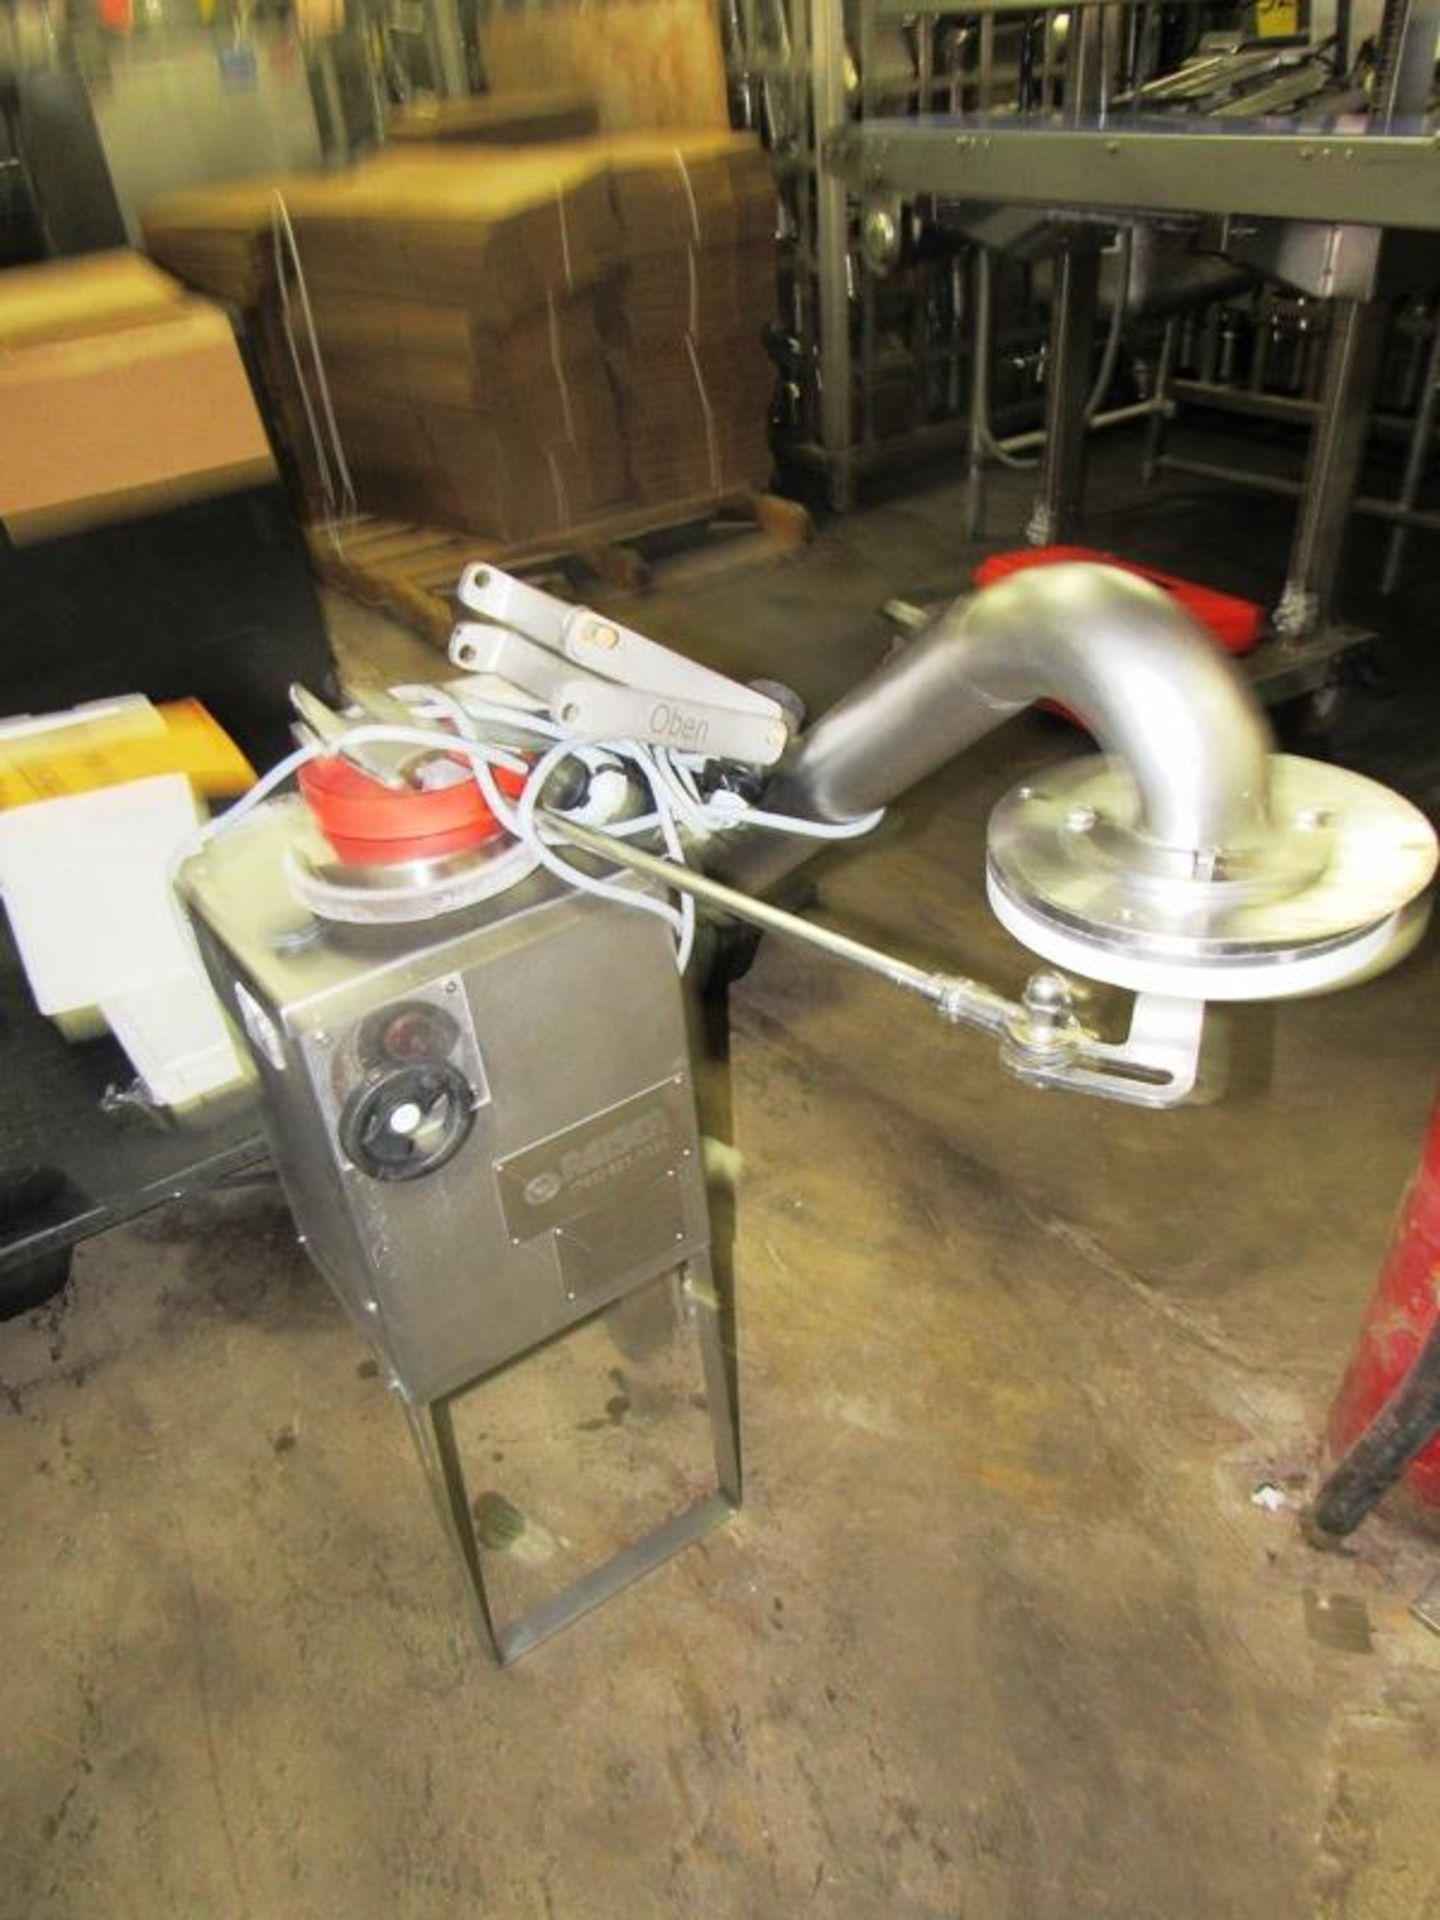 Lot 13A - Vemag Meatball Attachment Mdl. 821, S/N 8210458